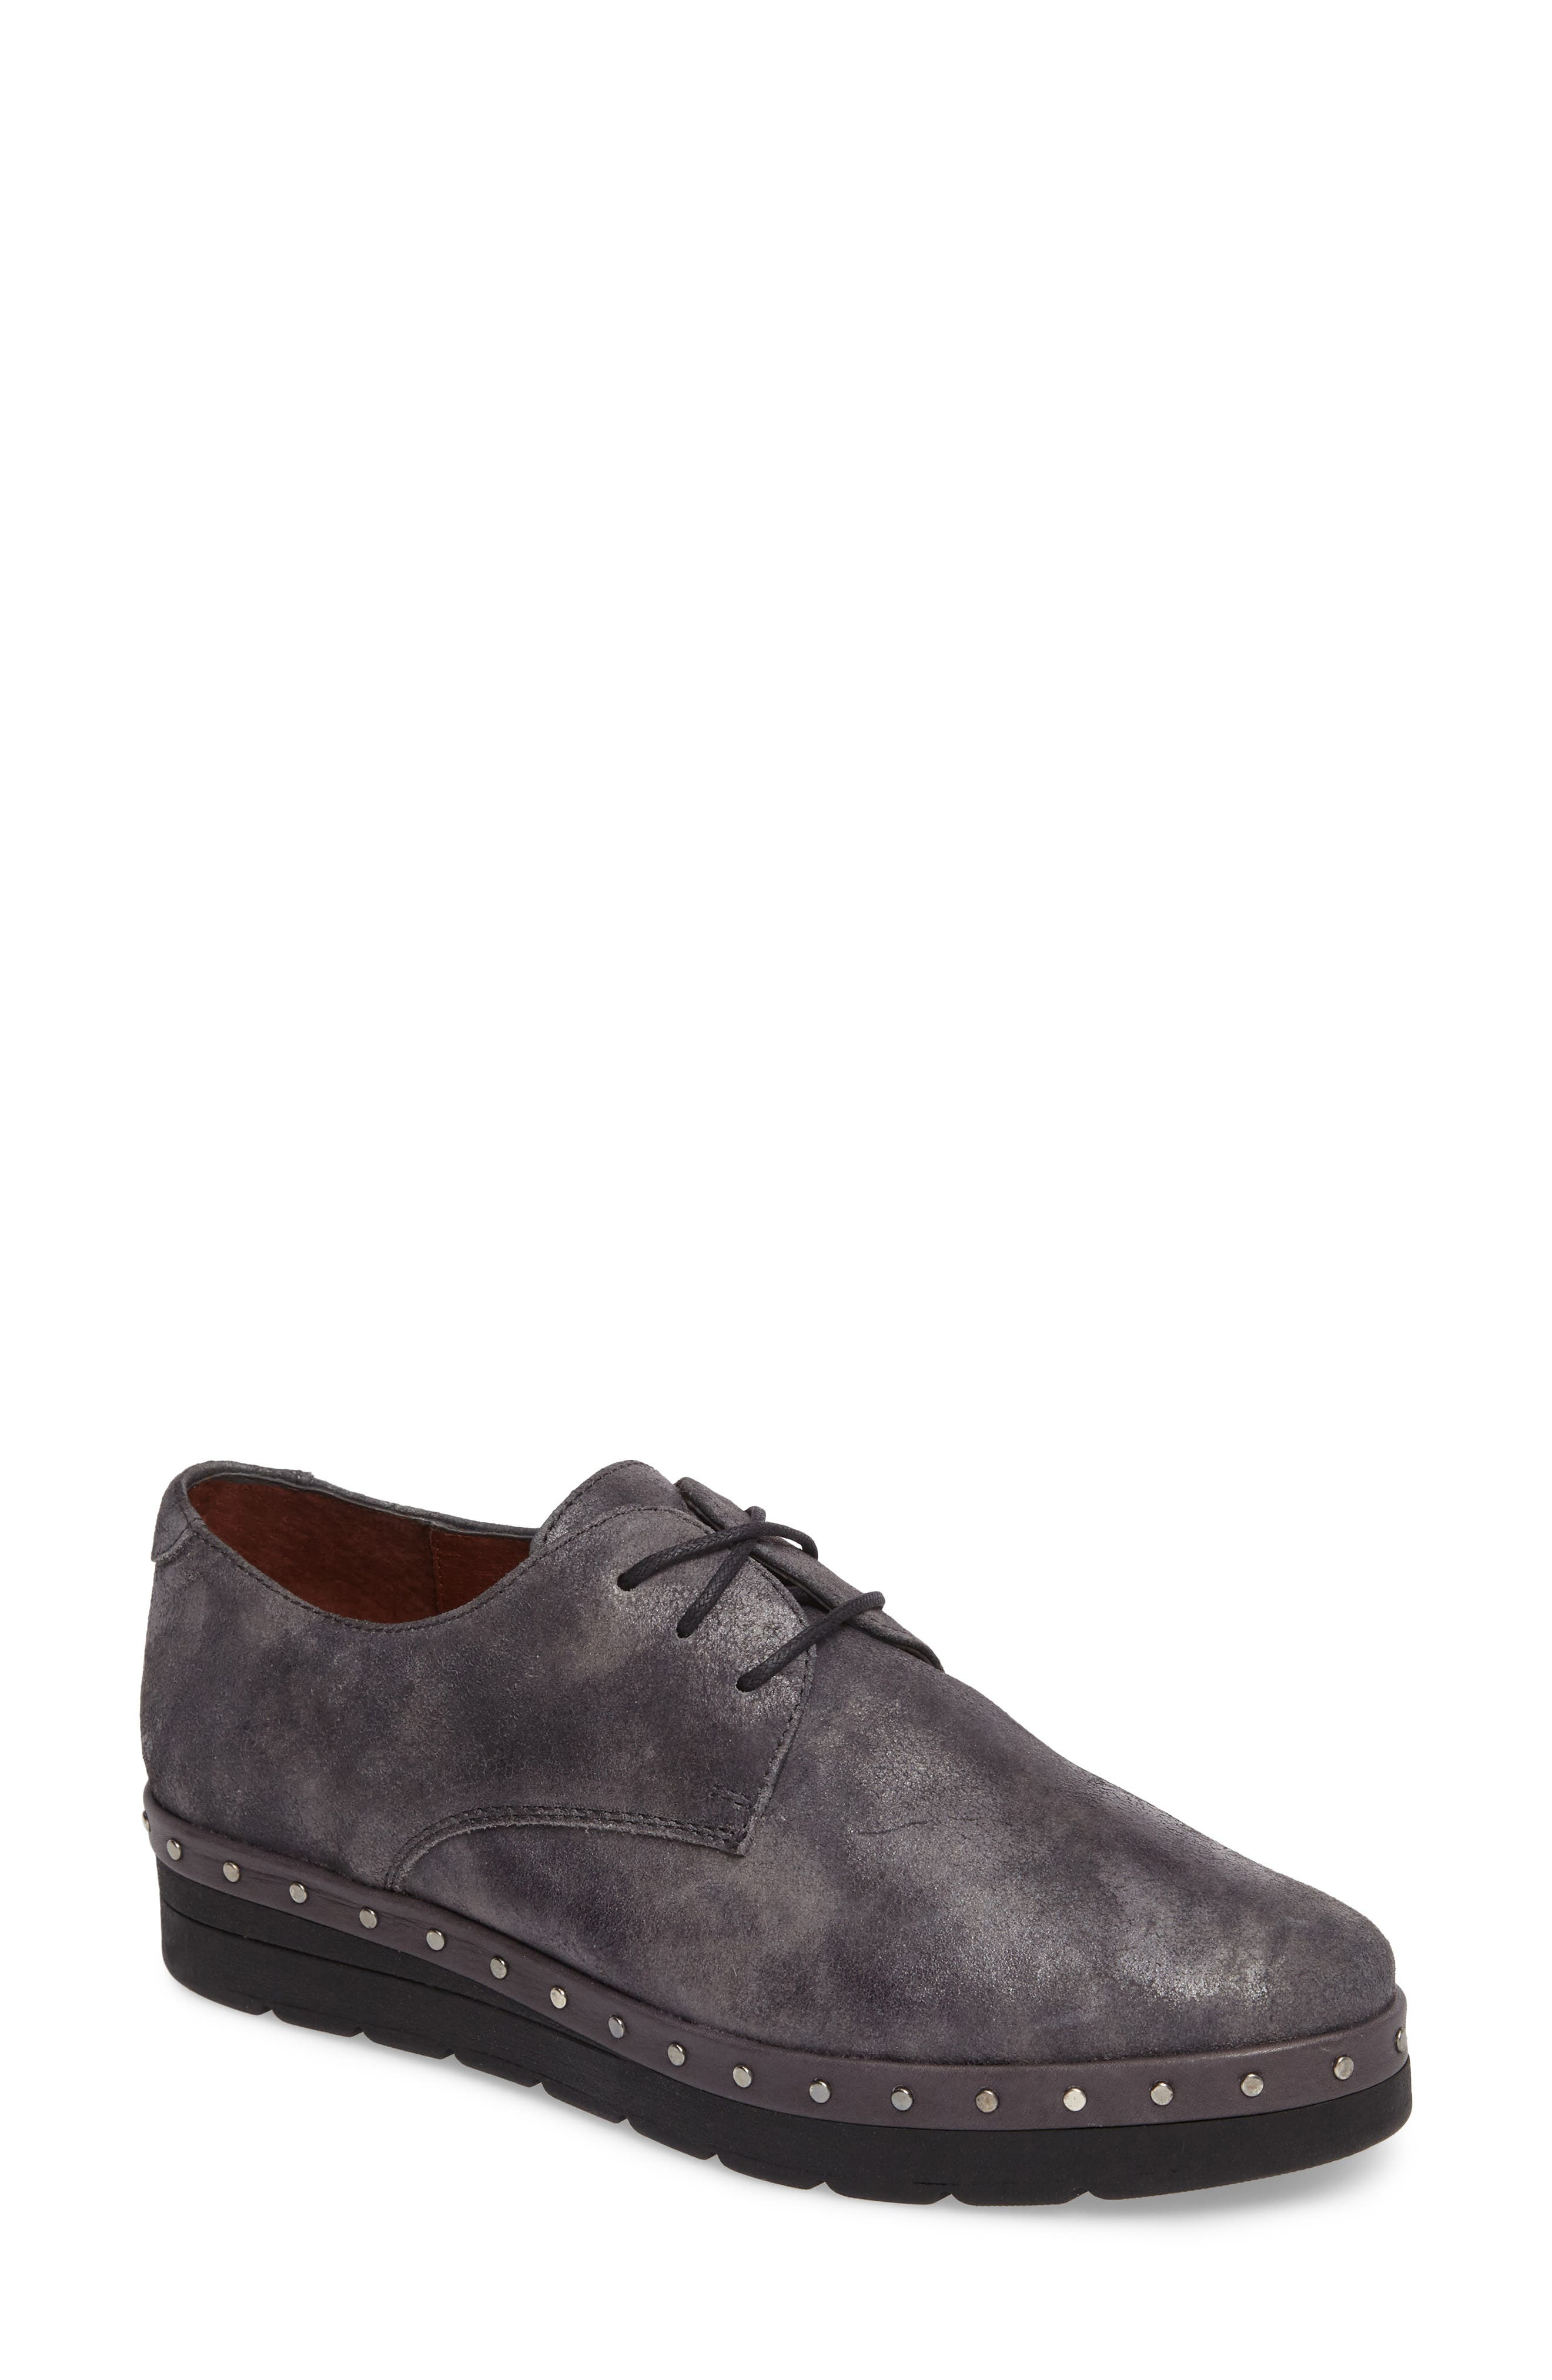 Abbot Oxford,                             Main thumbnail 1, color,                             BRUT GREY LEATHER